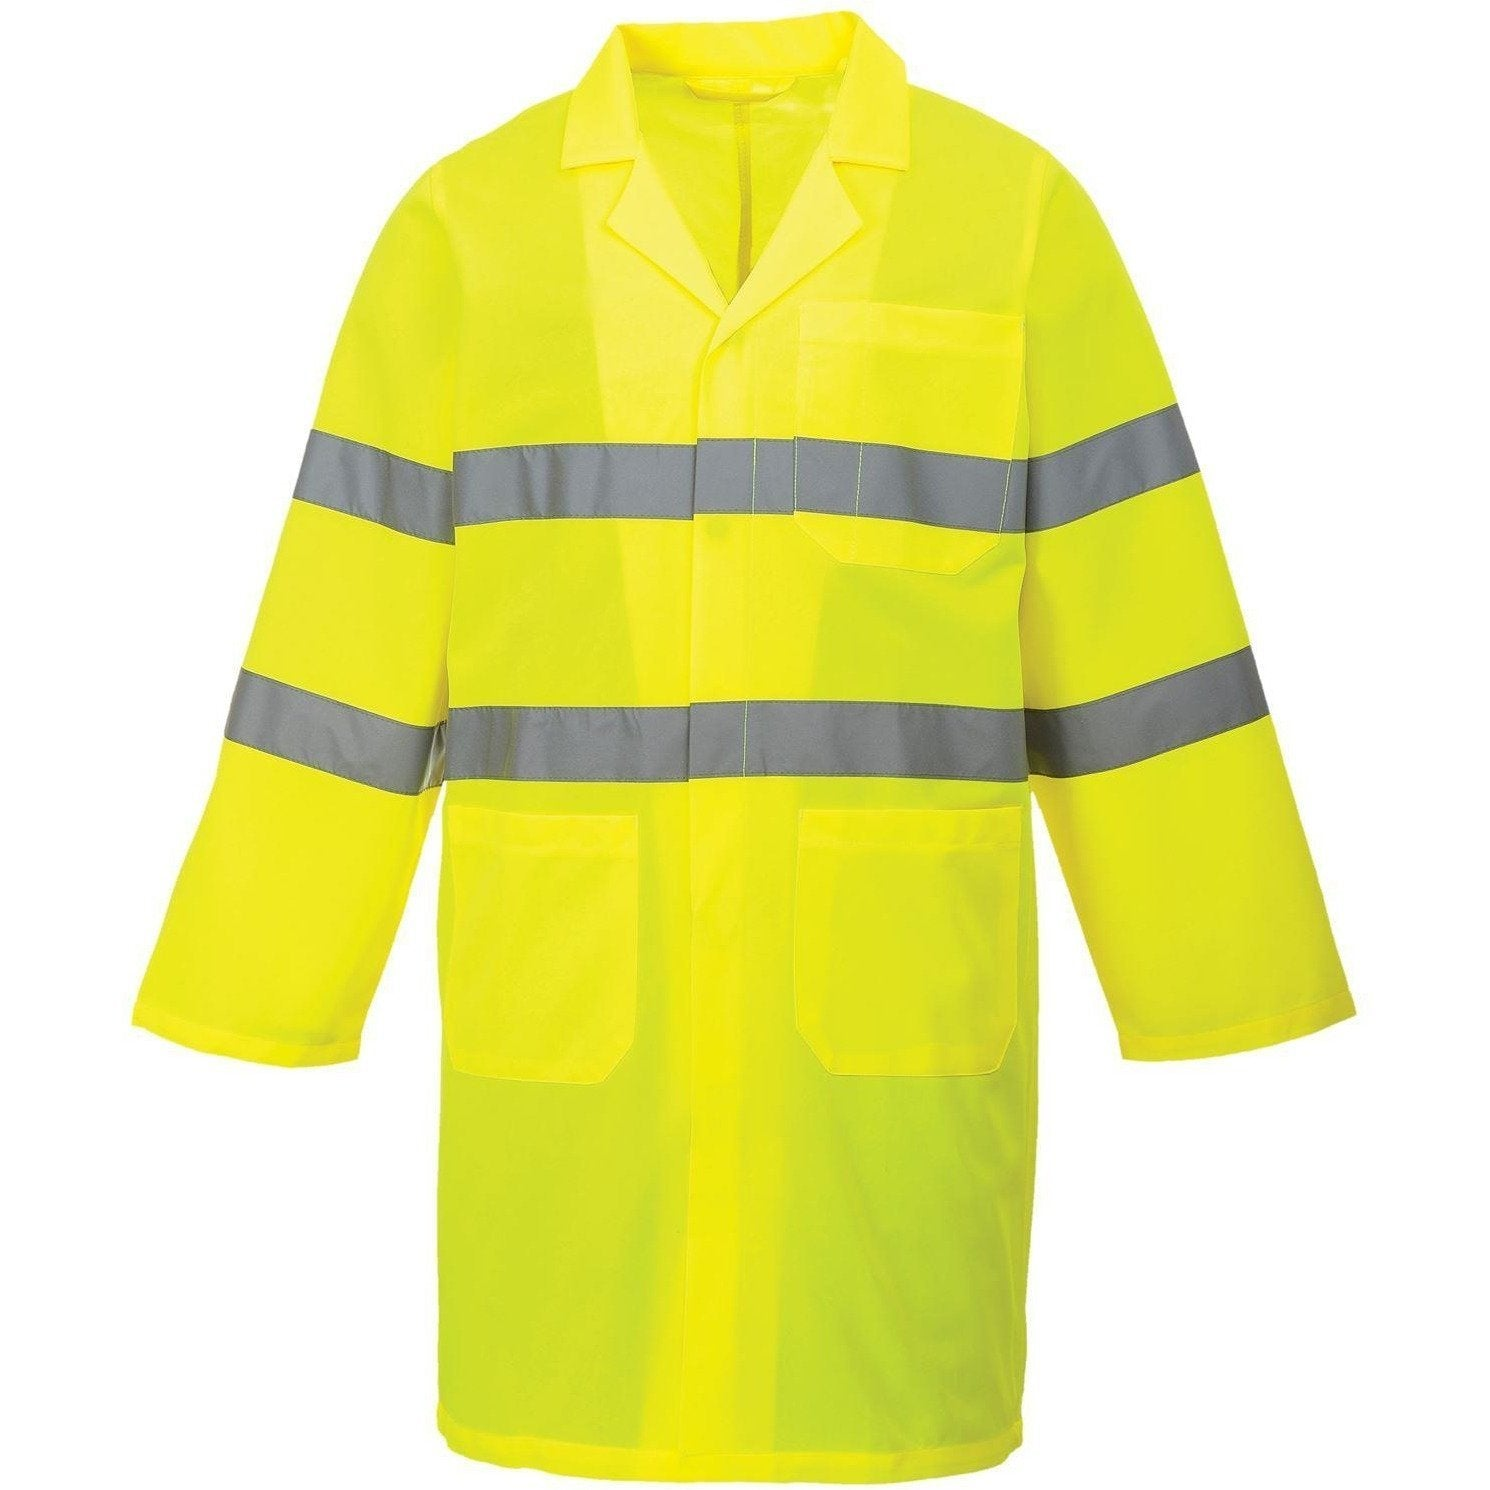 Portwest Hi-Vis Coat C052 - reid outdoors